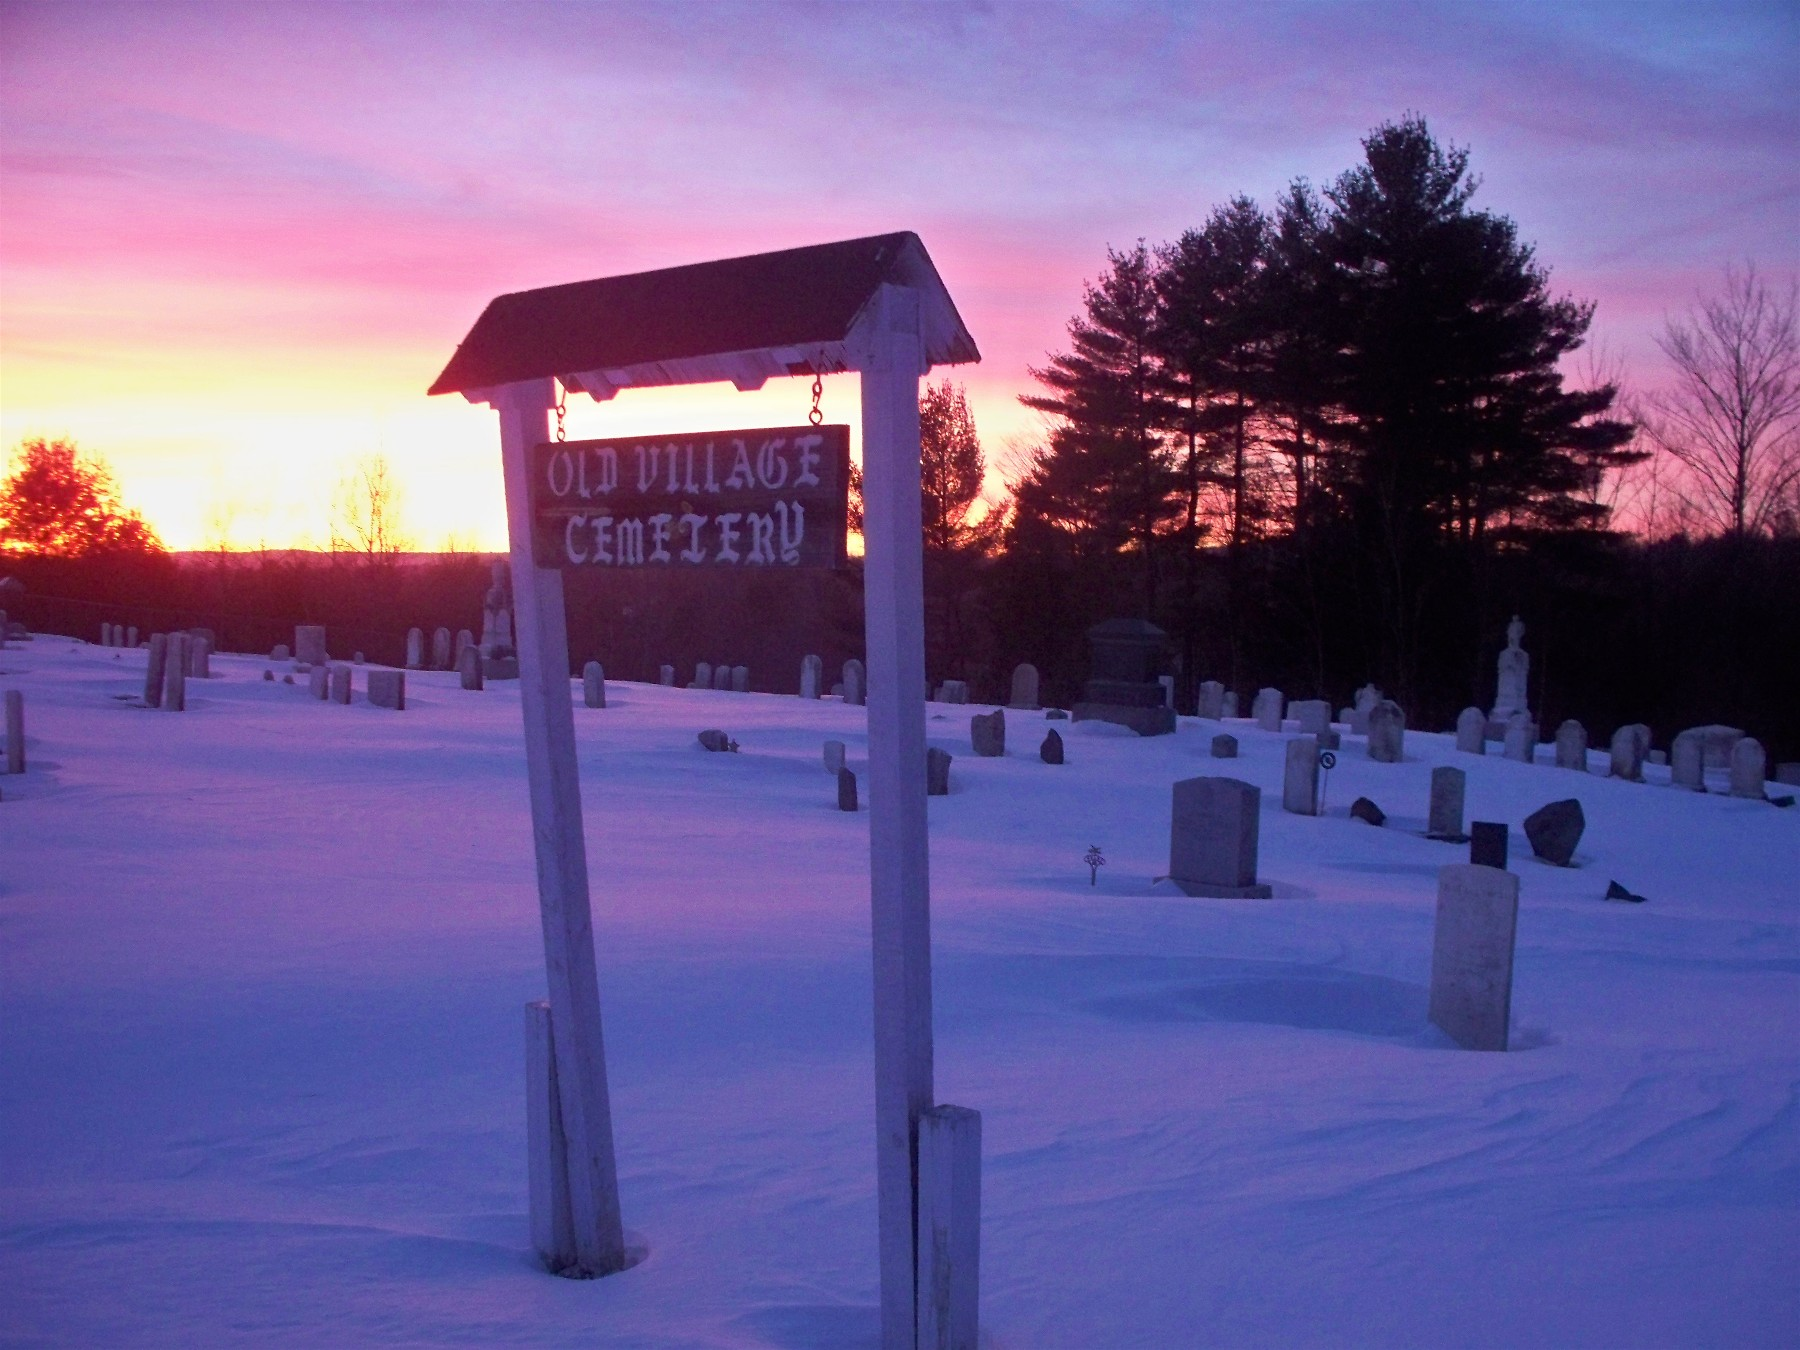 Old Village Cemetery